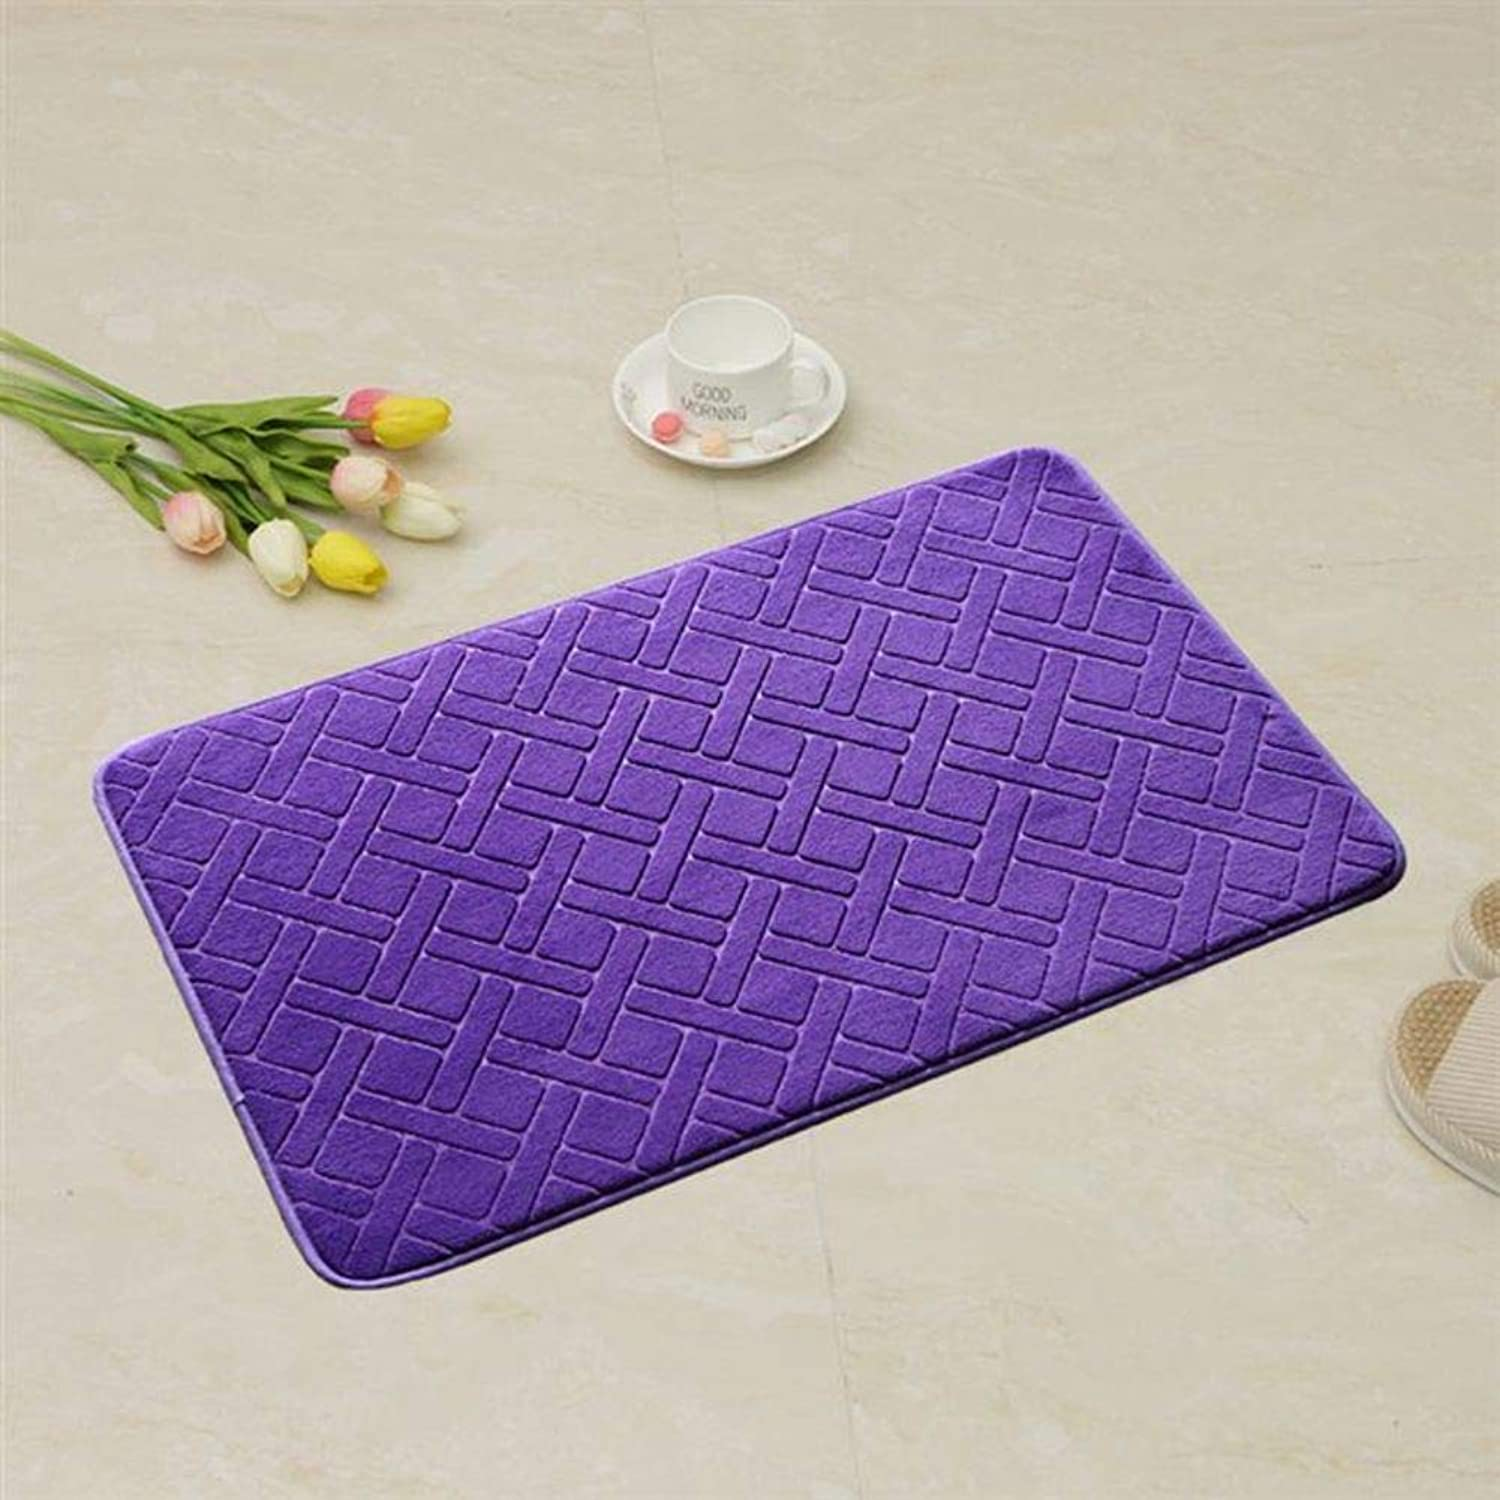 Doormat, No-Slipping mat Easy to Clean Durable Home Decor-Purple 20x31inch